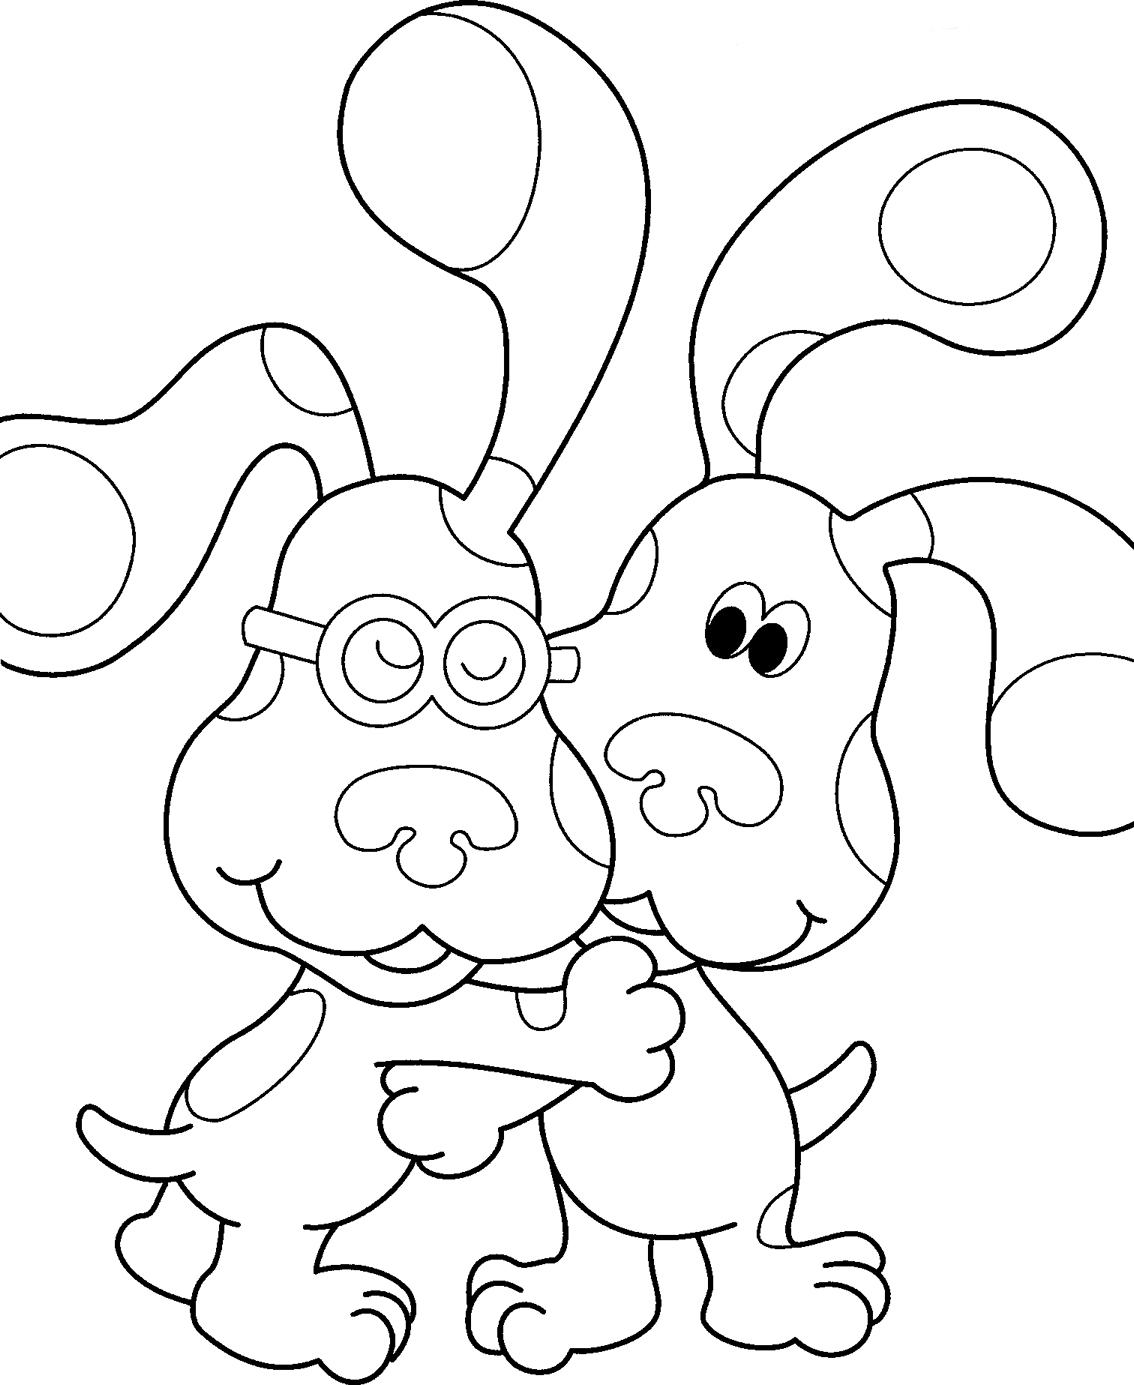 Download Nick Jr Coloring Pages 6 Print